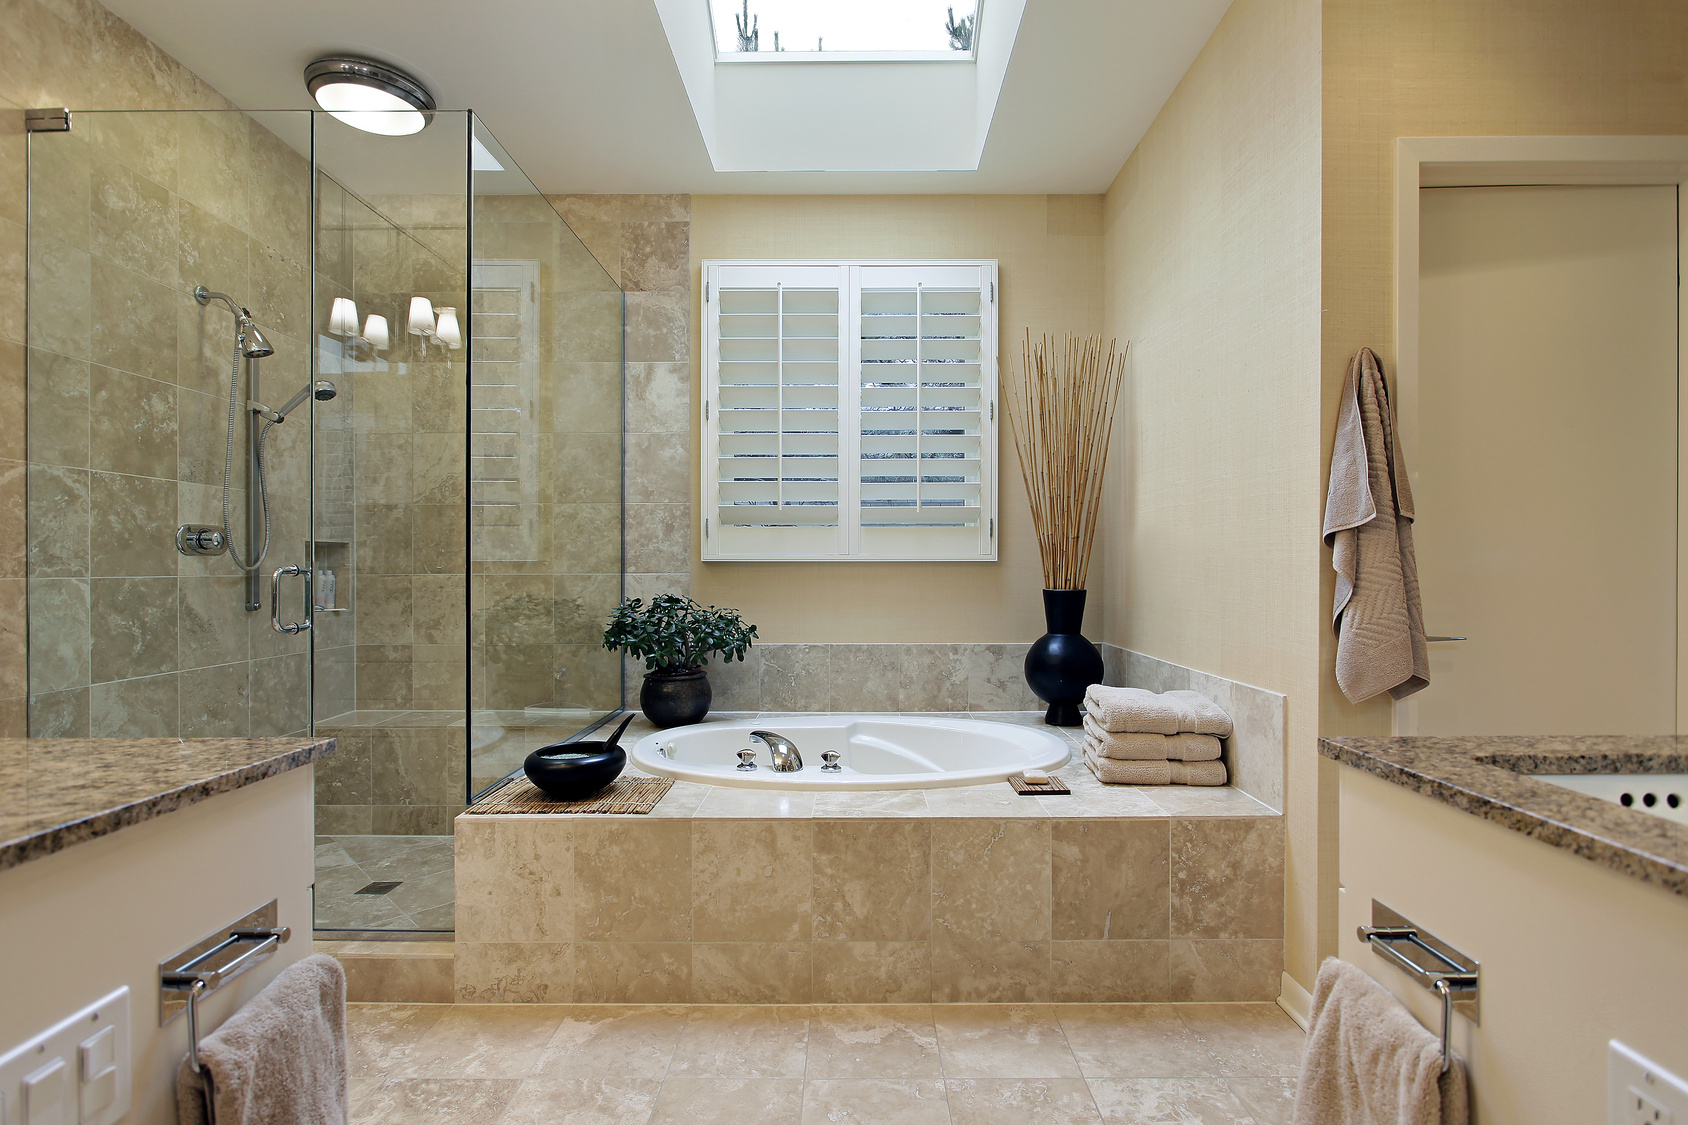 Beautiful General Contracting Home Renovation Services NJ   Bathroom Remodel New  Jersey